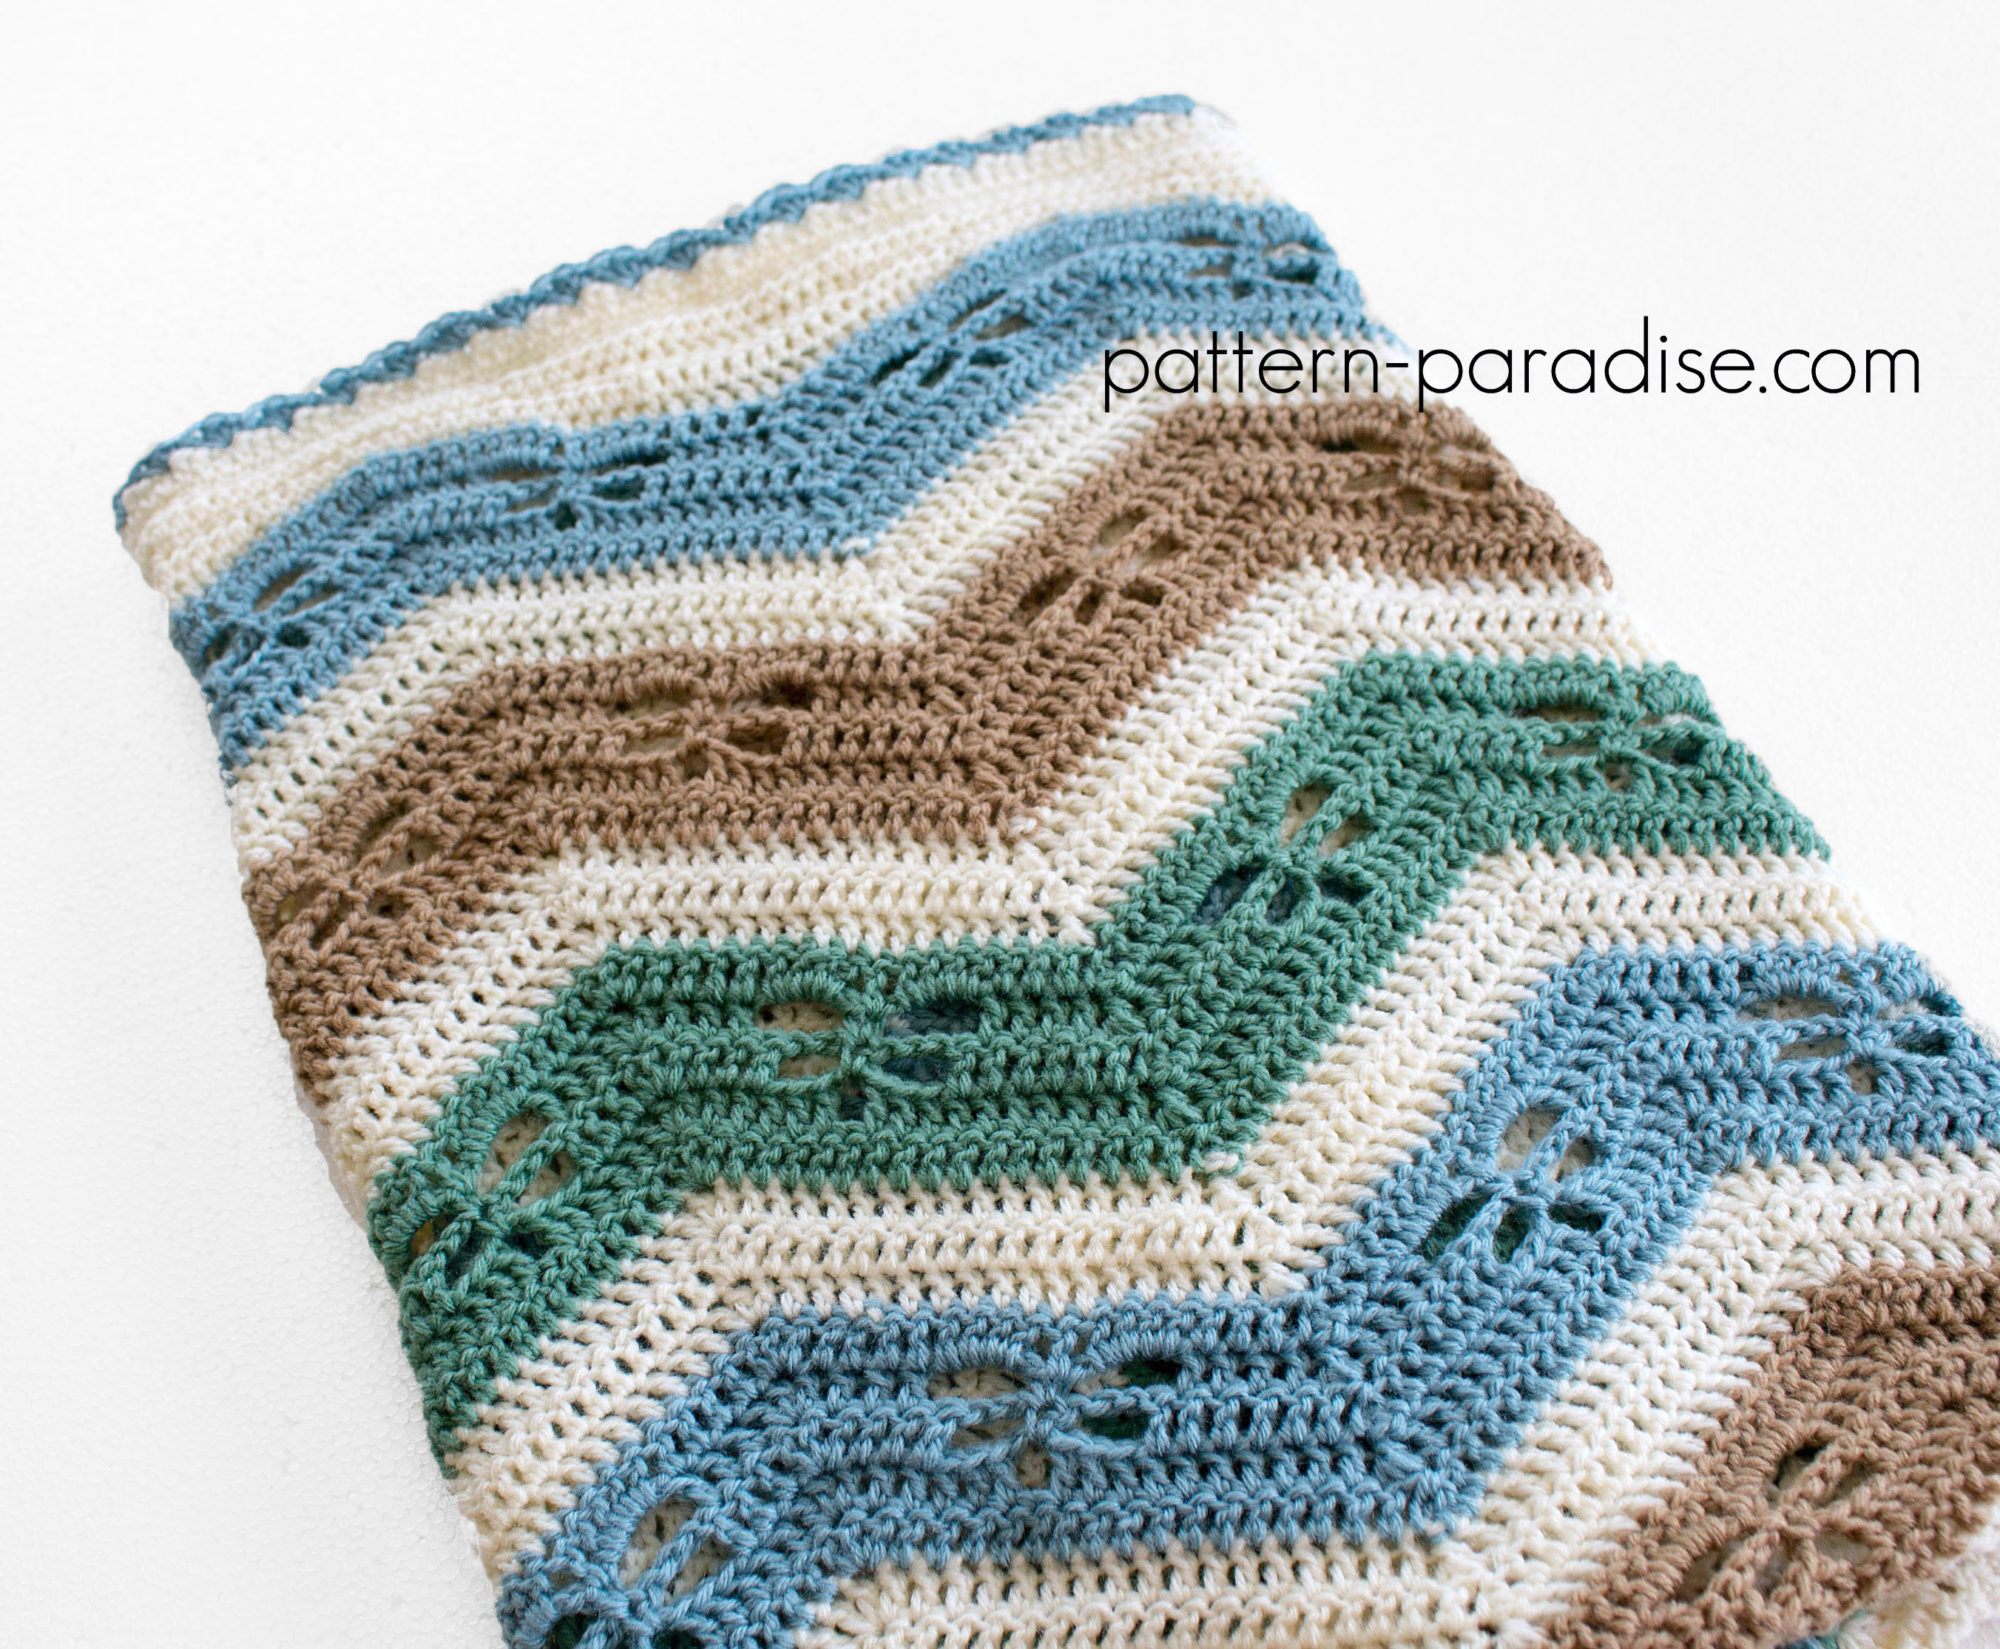 ca724eedac8 Free Crochet Pattern Dragonfly Chevron Baby Blanket on Pattern-Paradise.com   crochet